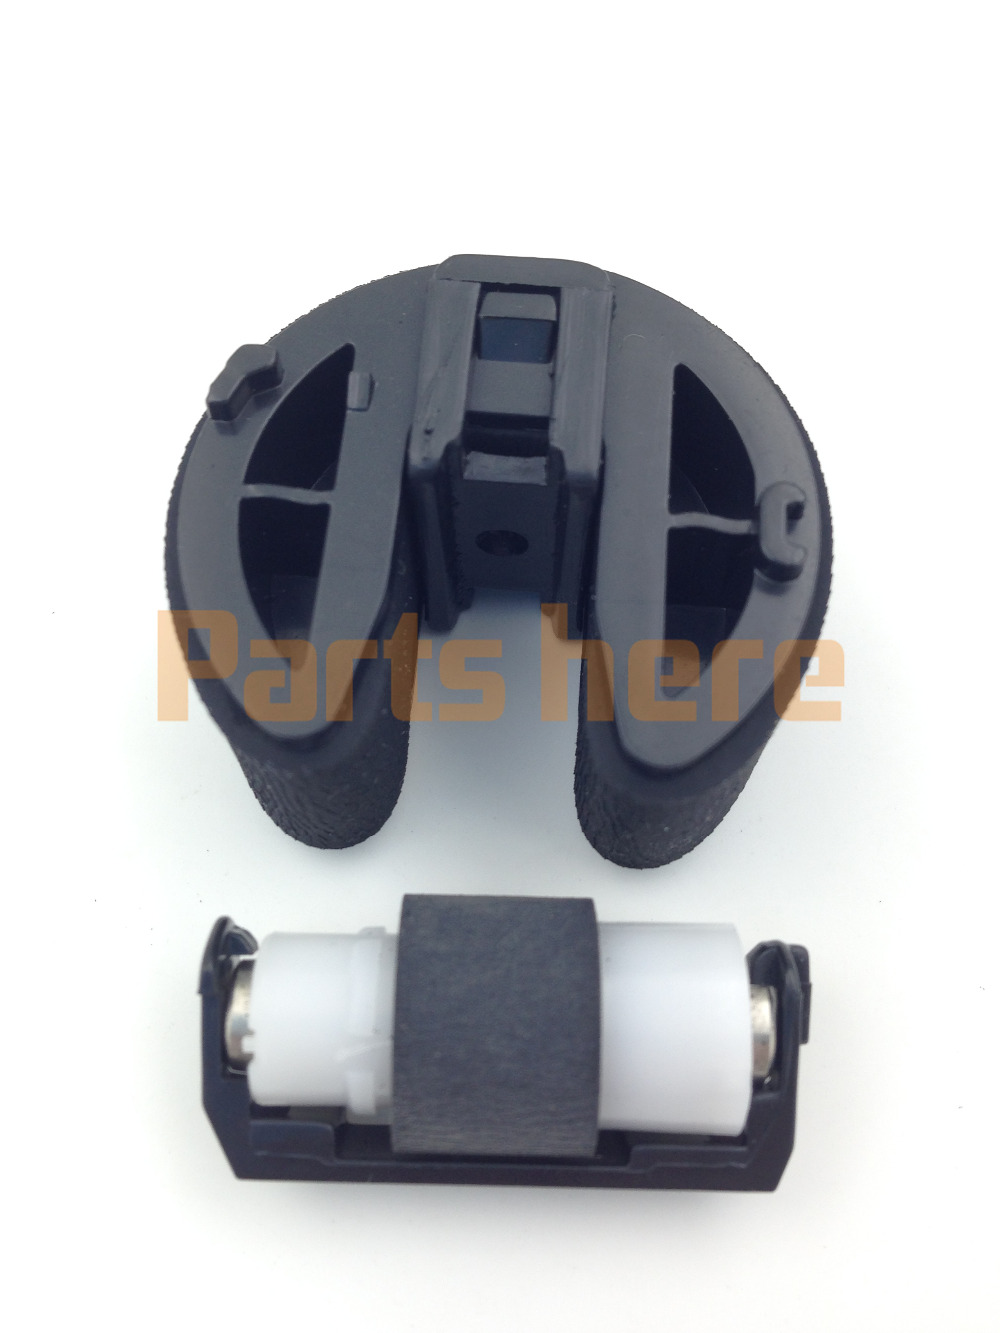 CC430-67901 RM1-4425 RM1-8765 RM1-4426 Pickup Roller Assembly for HP CM1312 CM2320 CP2025 CP1215 CP1515 CP1518 CM1415 CP1525 2014 spring and summer new elegant gold buckle leather shoes women shoes carrefour